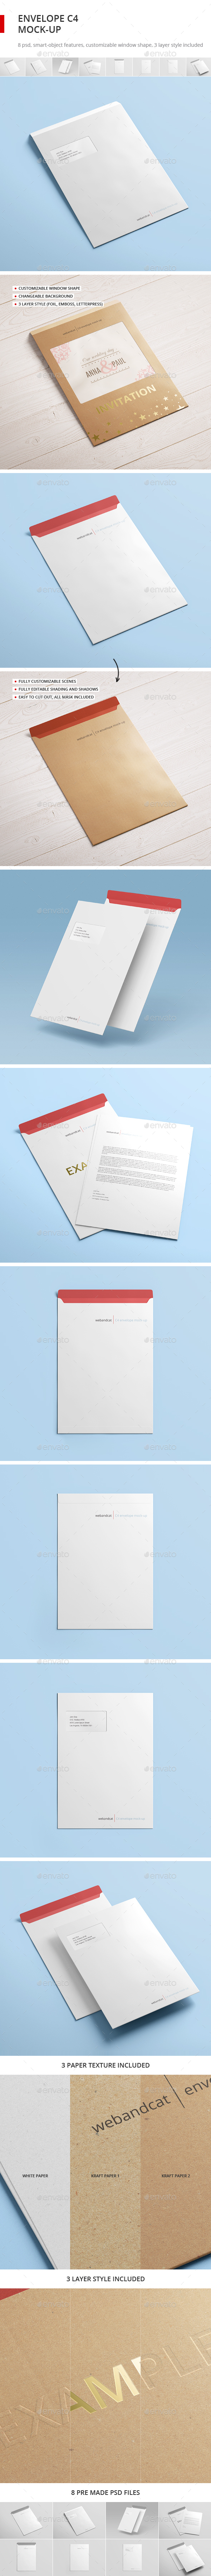 Envelope C4 Mock-up - Stationery Print